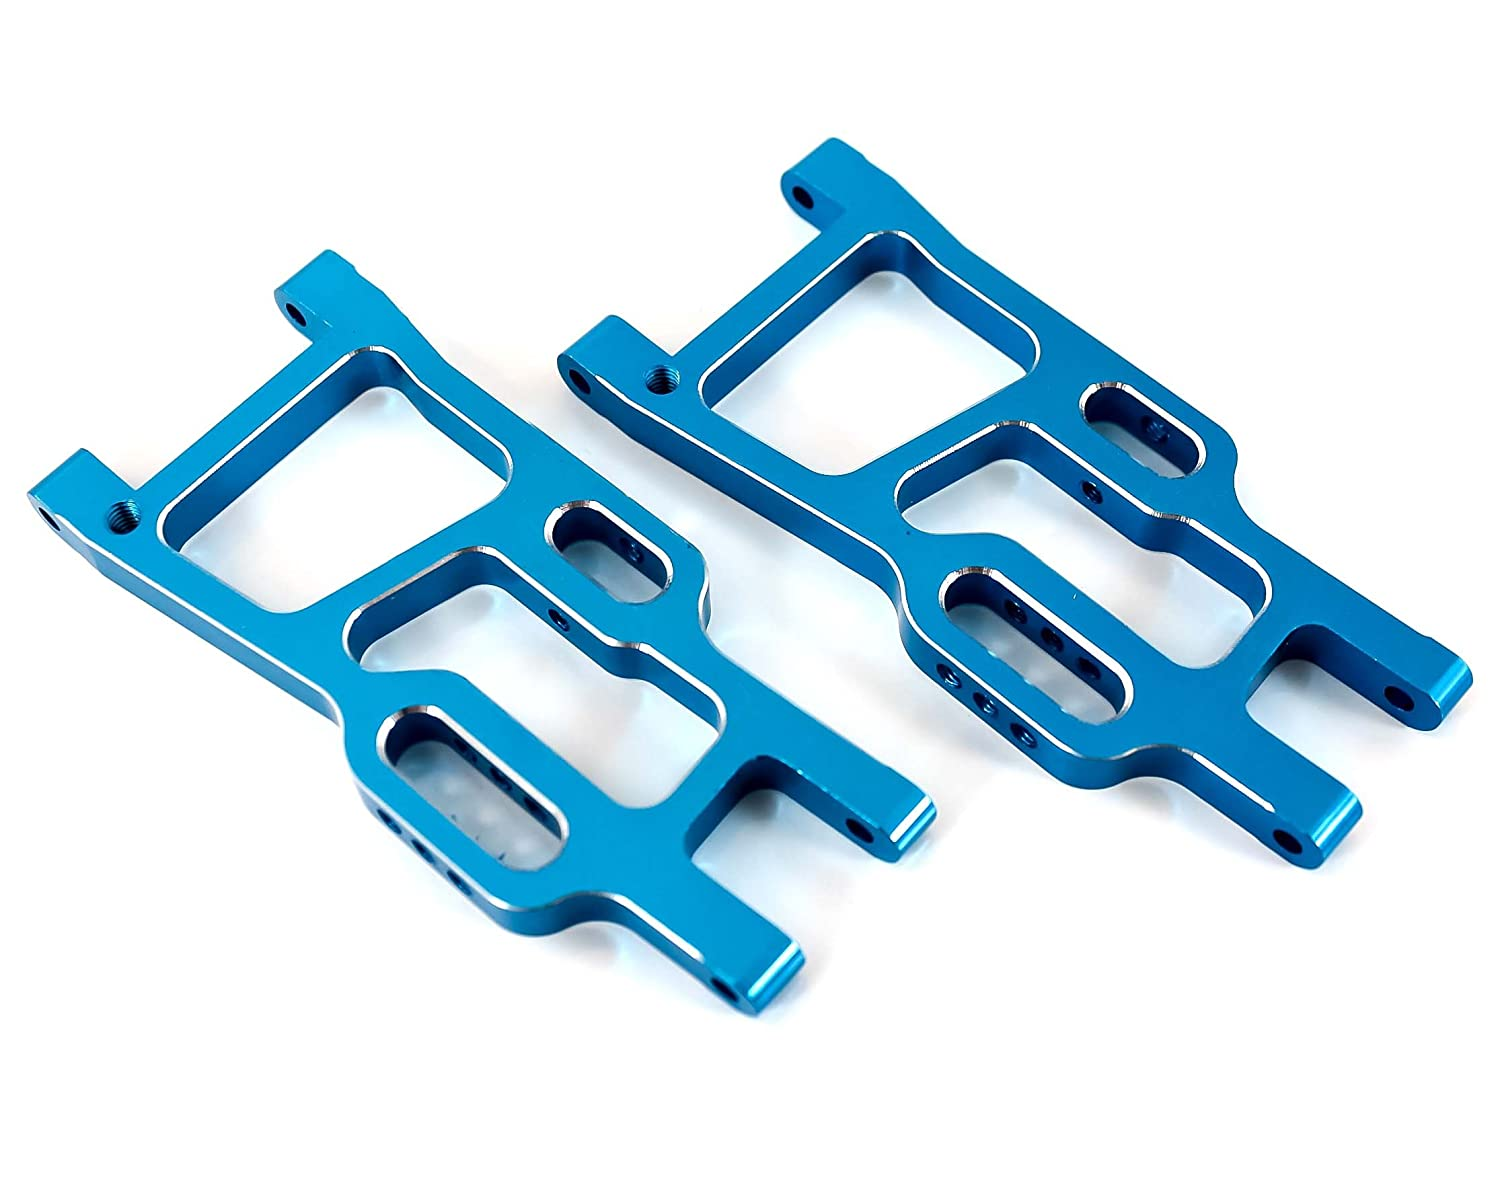 HSP 106021 Blue Aluminum Rear Lower Suspension Arms for Redcat Tornado EPX PRO